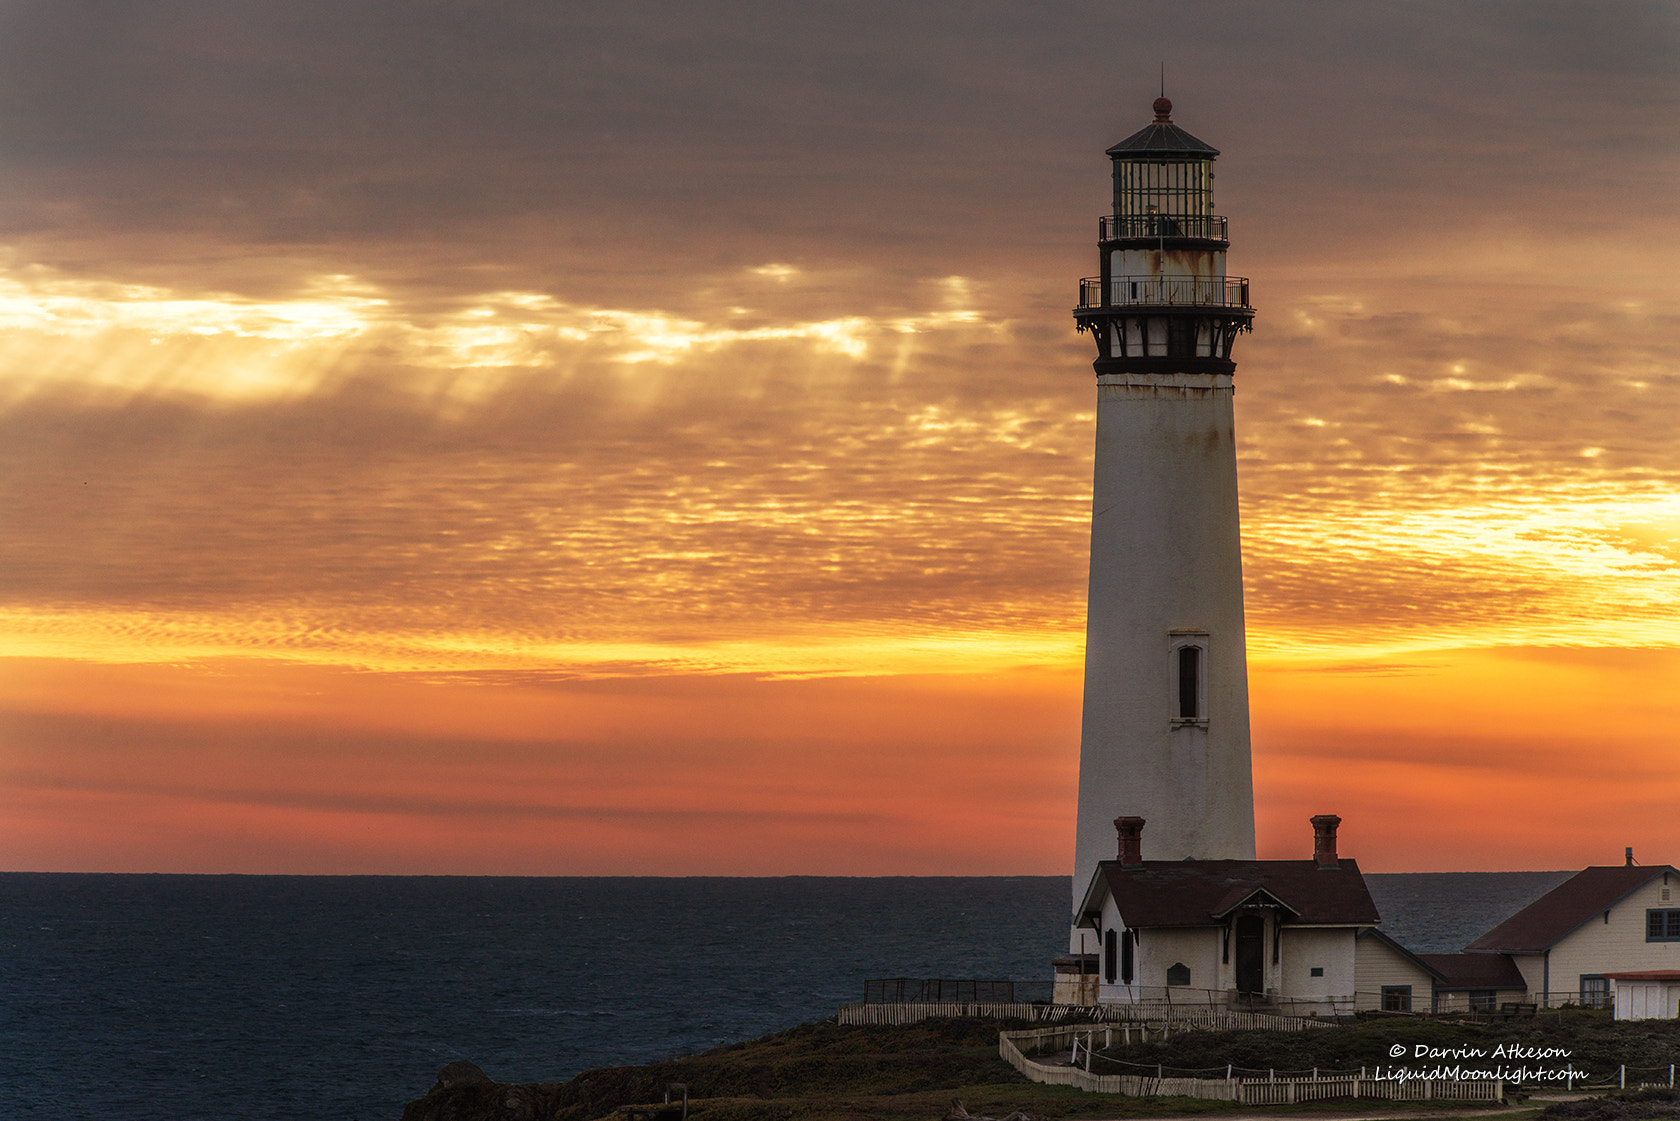 Photograph The Lighthouse by Darvin Atkeson on 500px